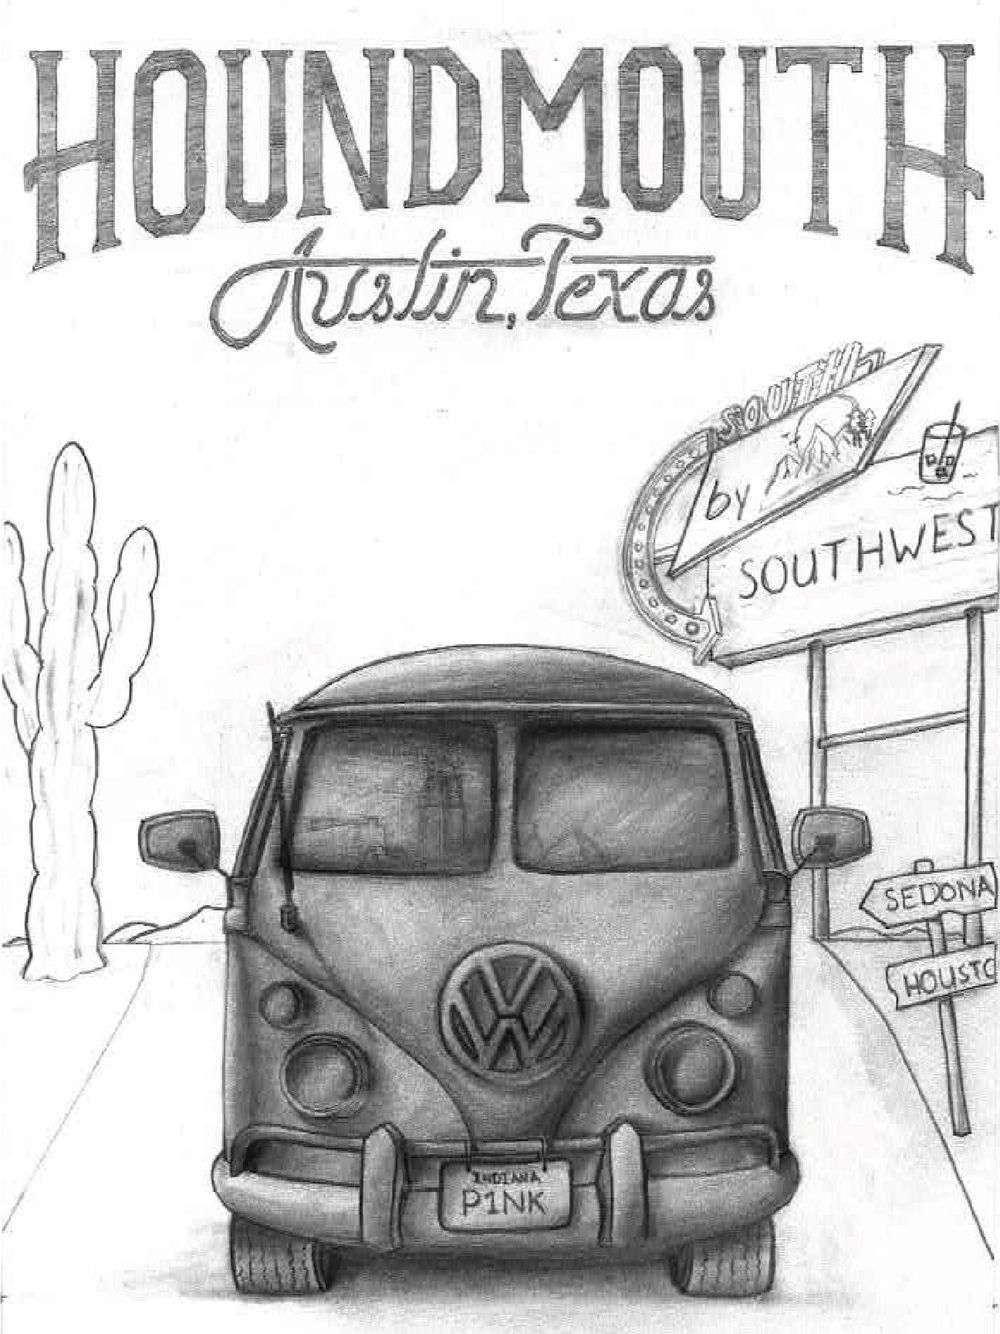 Houndmouth Gig Poster - image 1 - student project